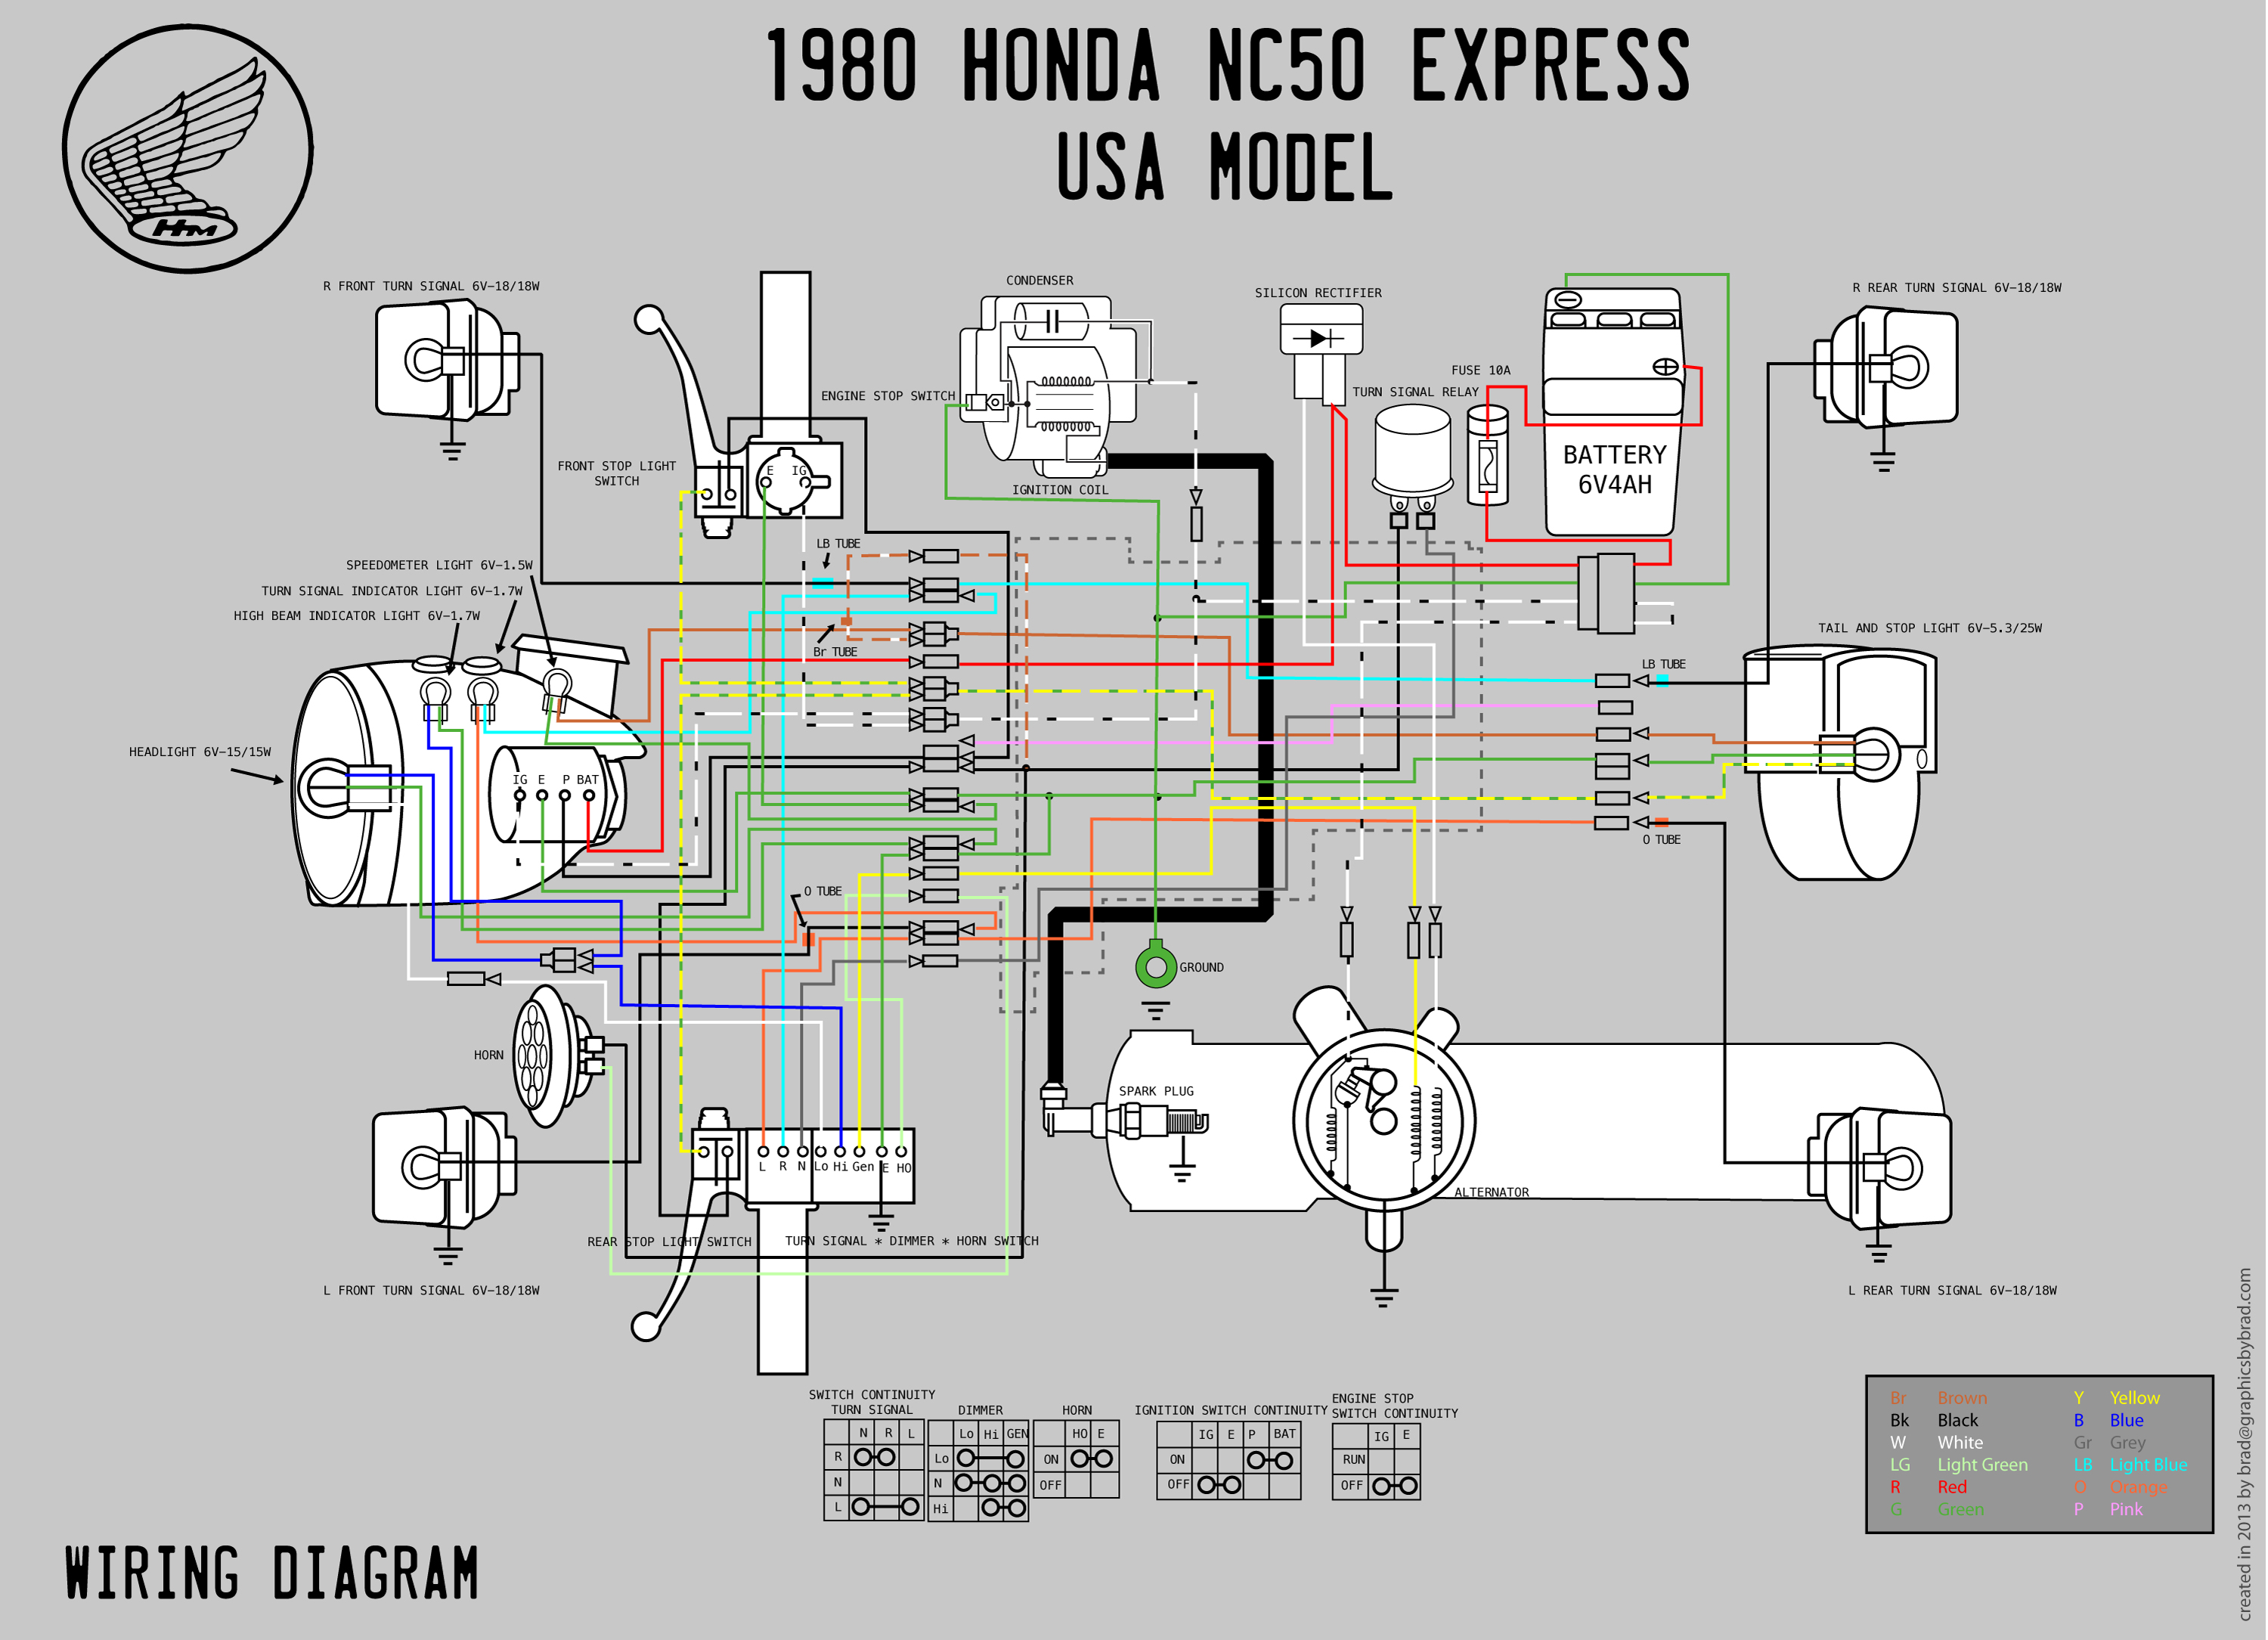 1980 nc50 wiring lrg 1980 honda nc50 wiring diagram moped wiki honda wiring diagram at creativeand.co